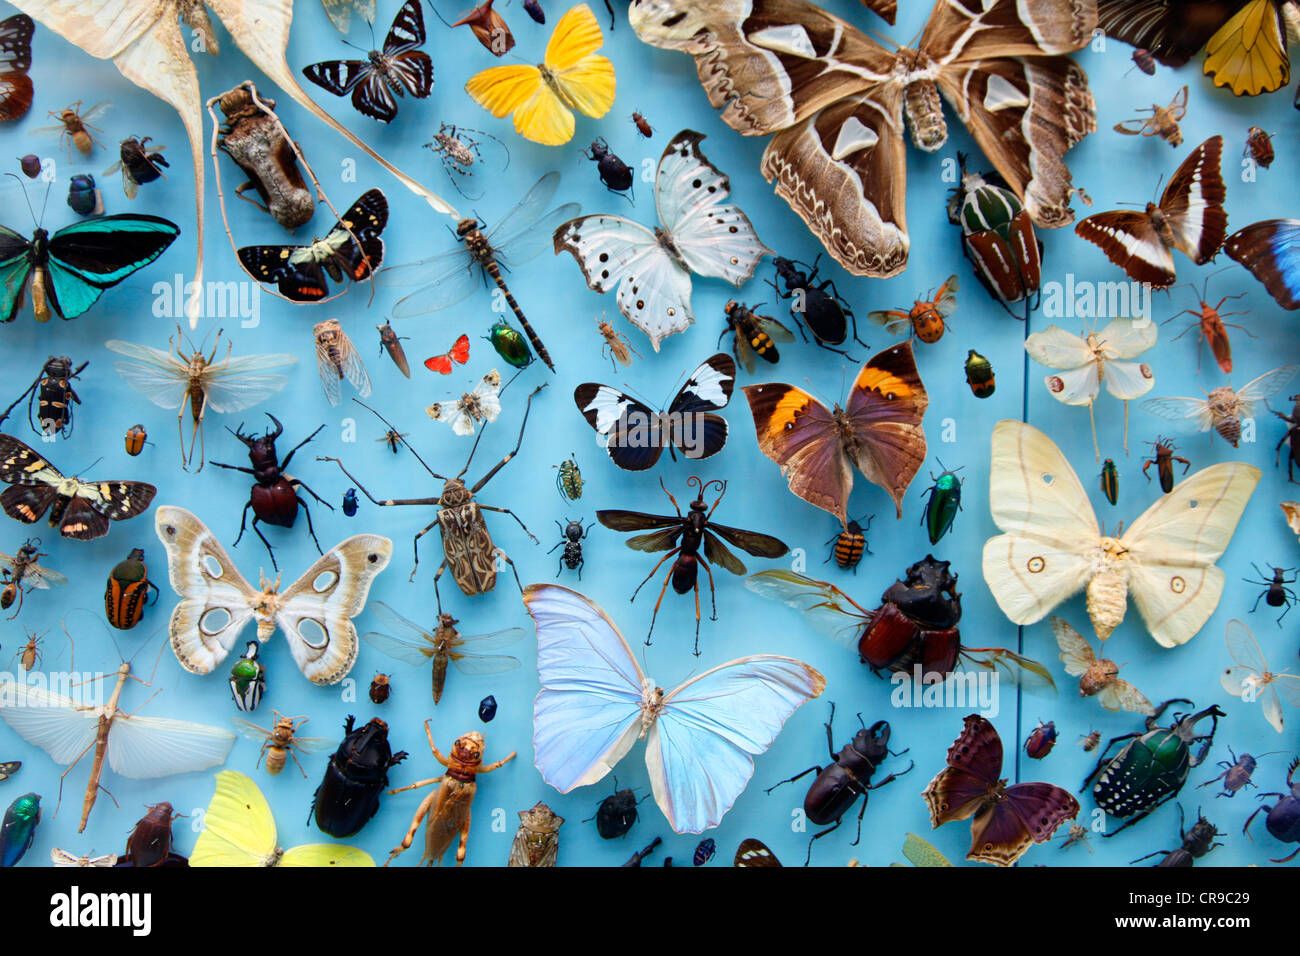 Genial Collection Of Insects, Moths, Butterflies, Beetles From Around The World,  The University Museum Of Natural History, Oxford